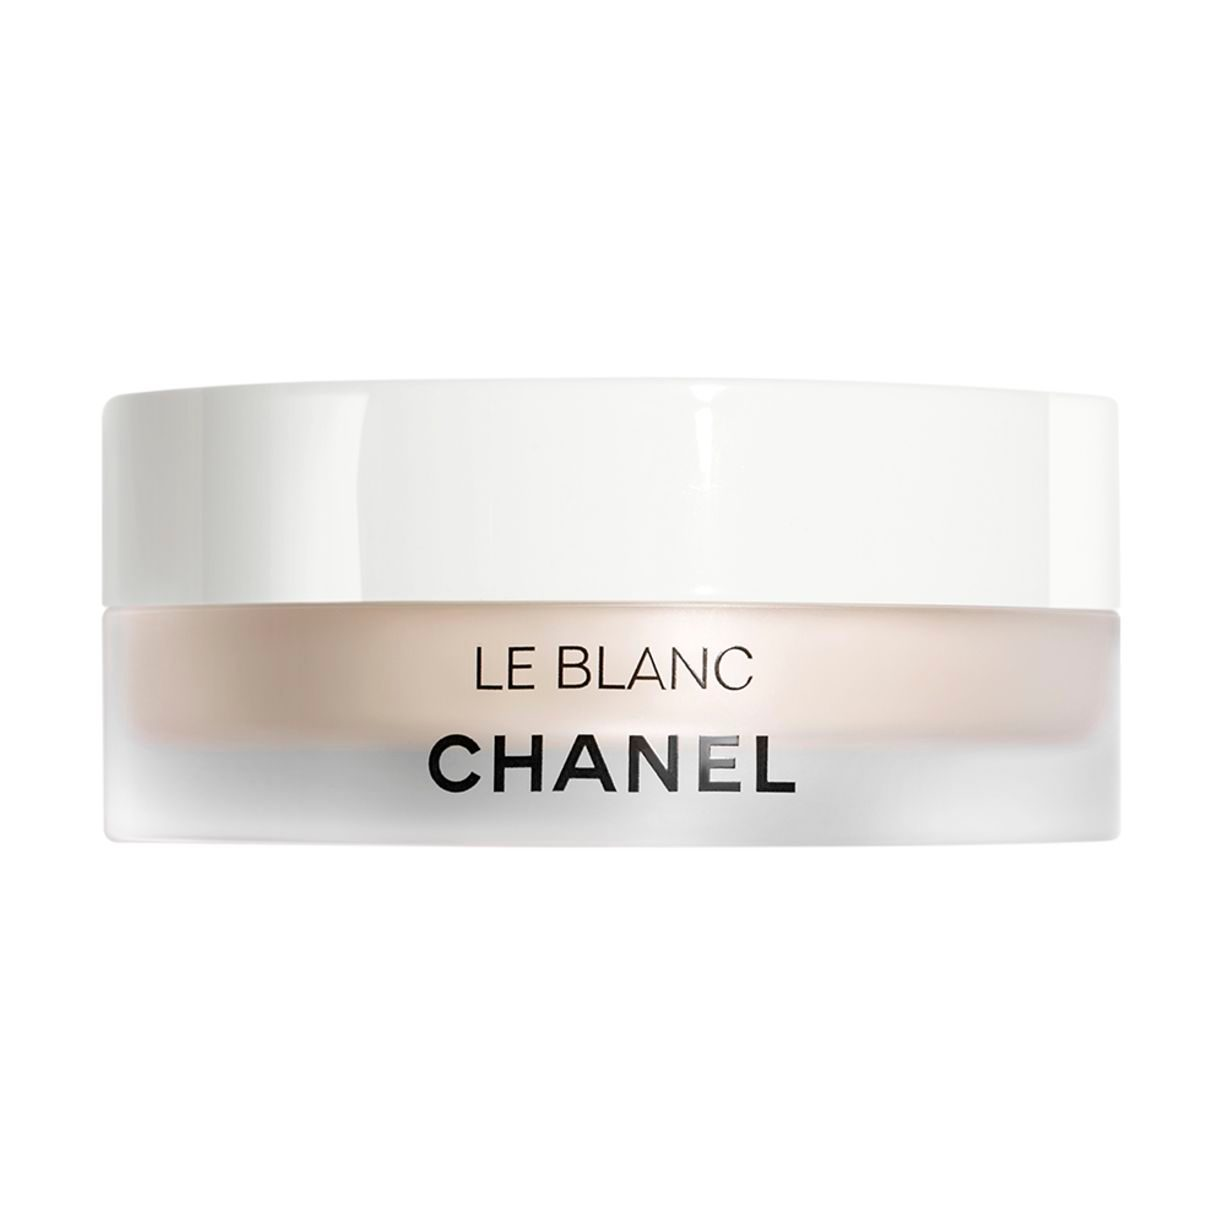 LE BLANC UV PROTECTION WHITENING LOOSE POWDER SPF 50